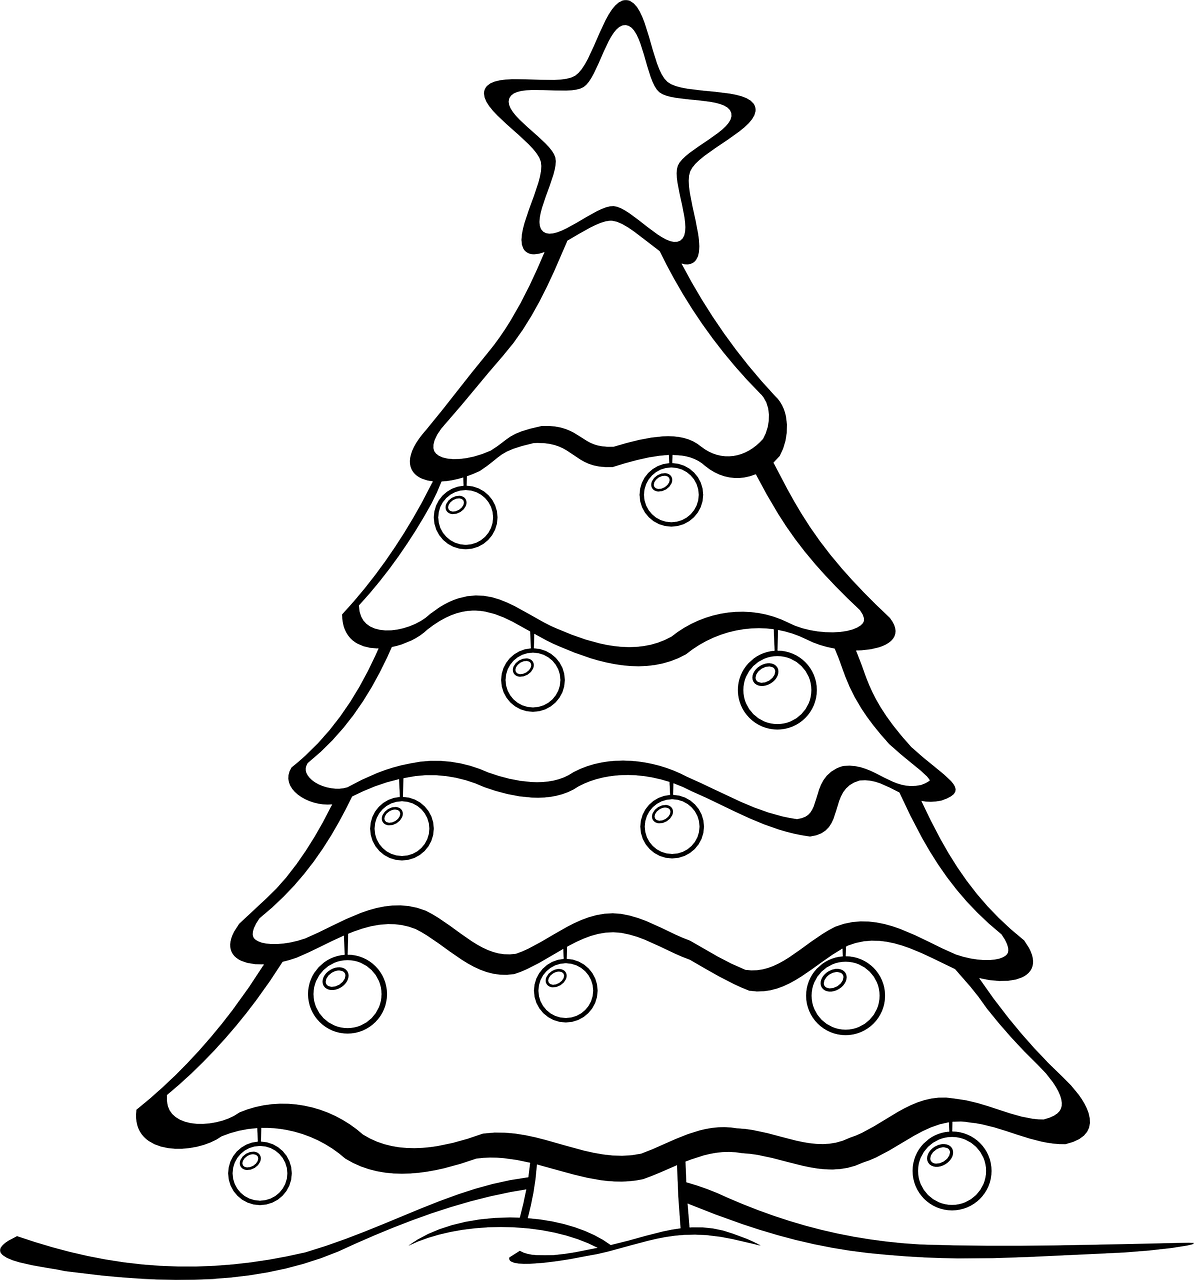 Christmas Colouring Pages Decorations With Colour And Design Your Own Tree Printables In The Playroom